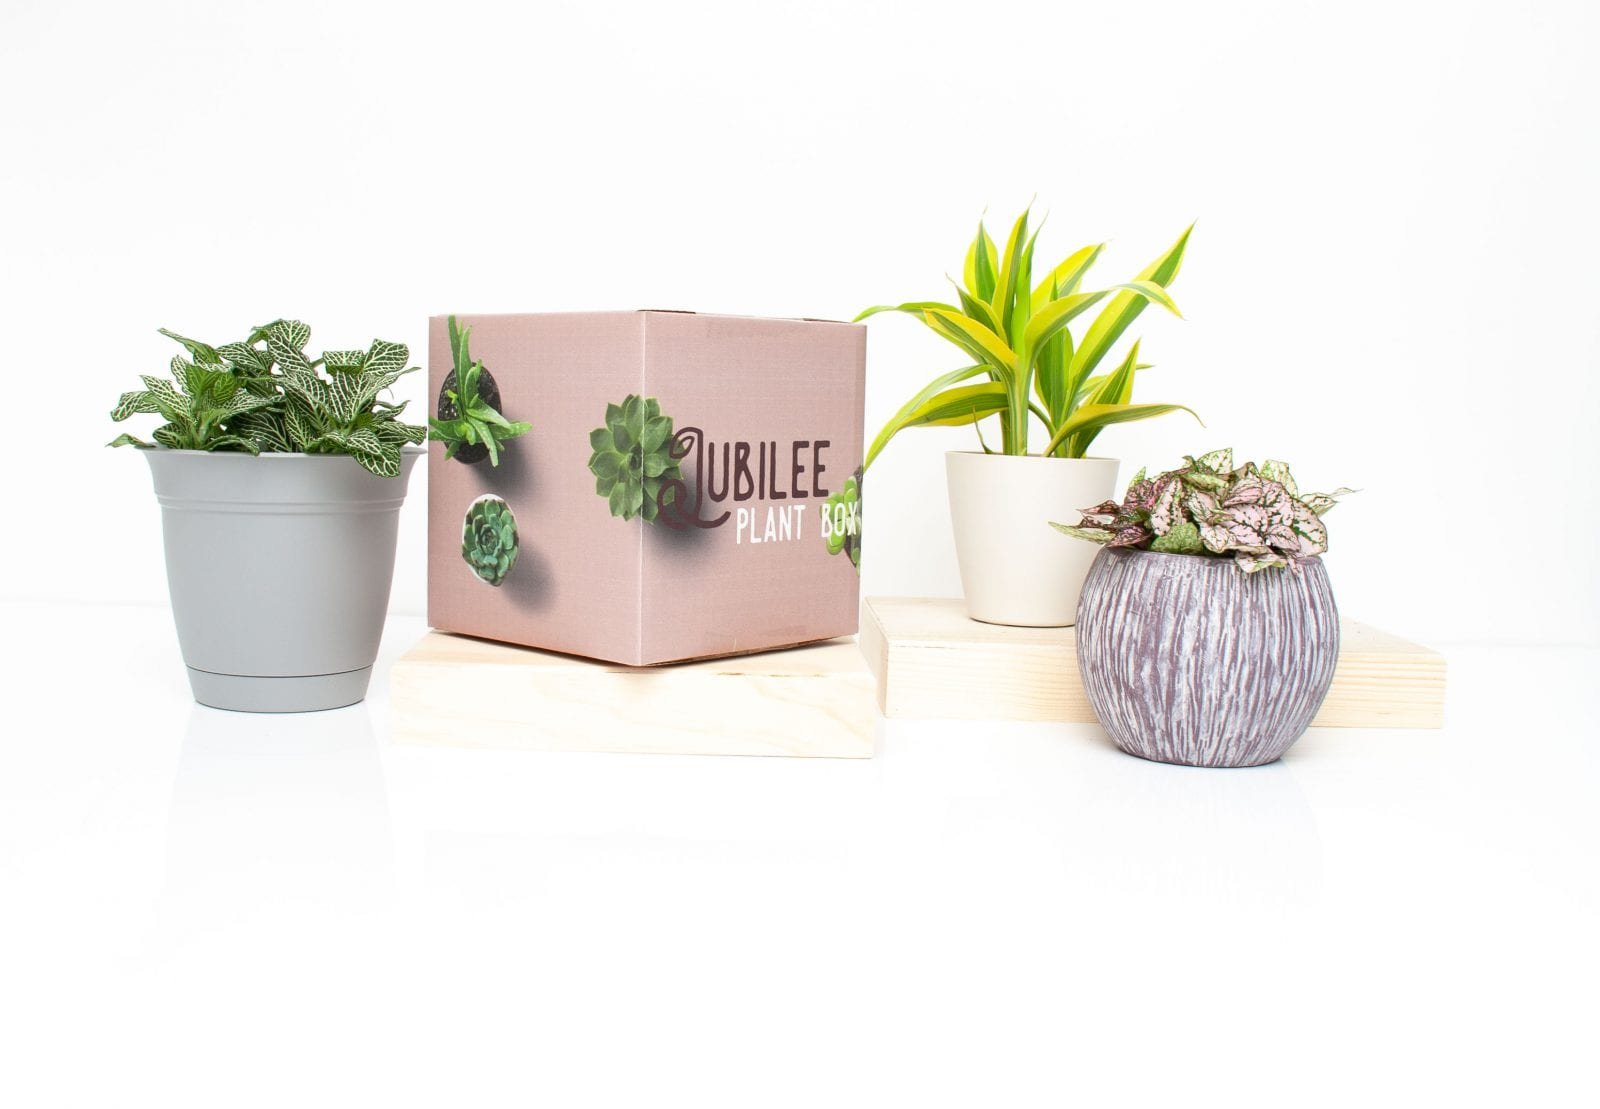 Image of Jubilee plant box with various plants in vases